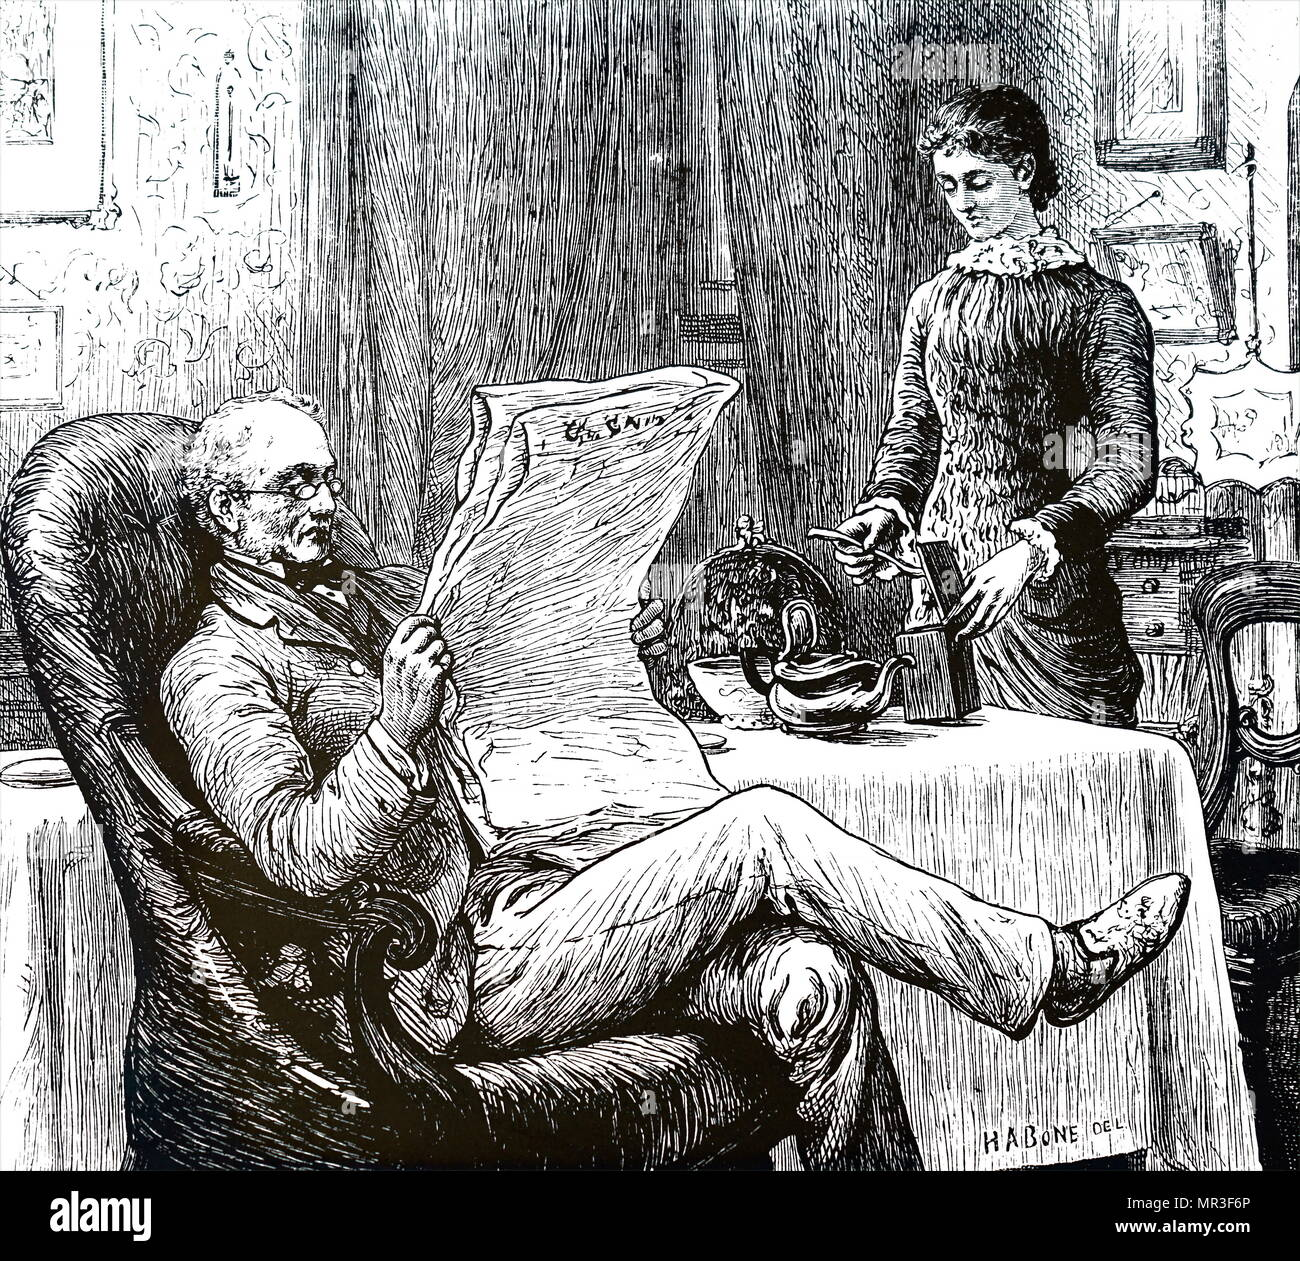 Illustration depicting an older gentleman reading his newspaper as his daughter prepares tea for him. Dated 19th century - Stock Image